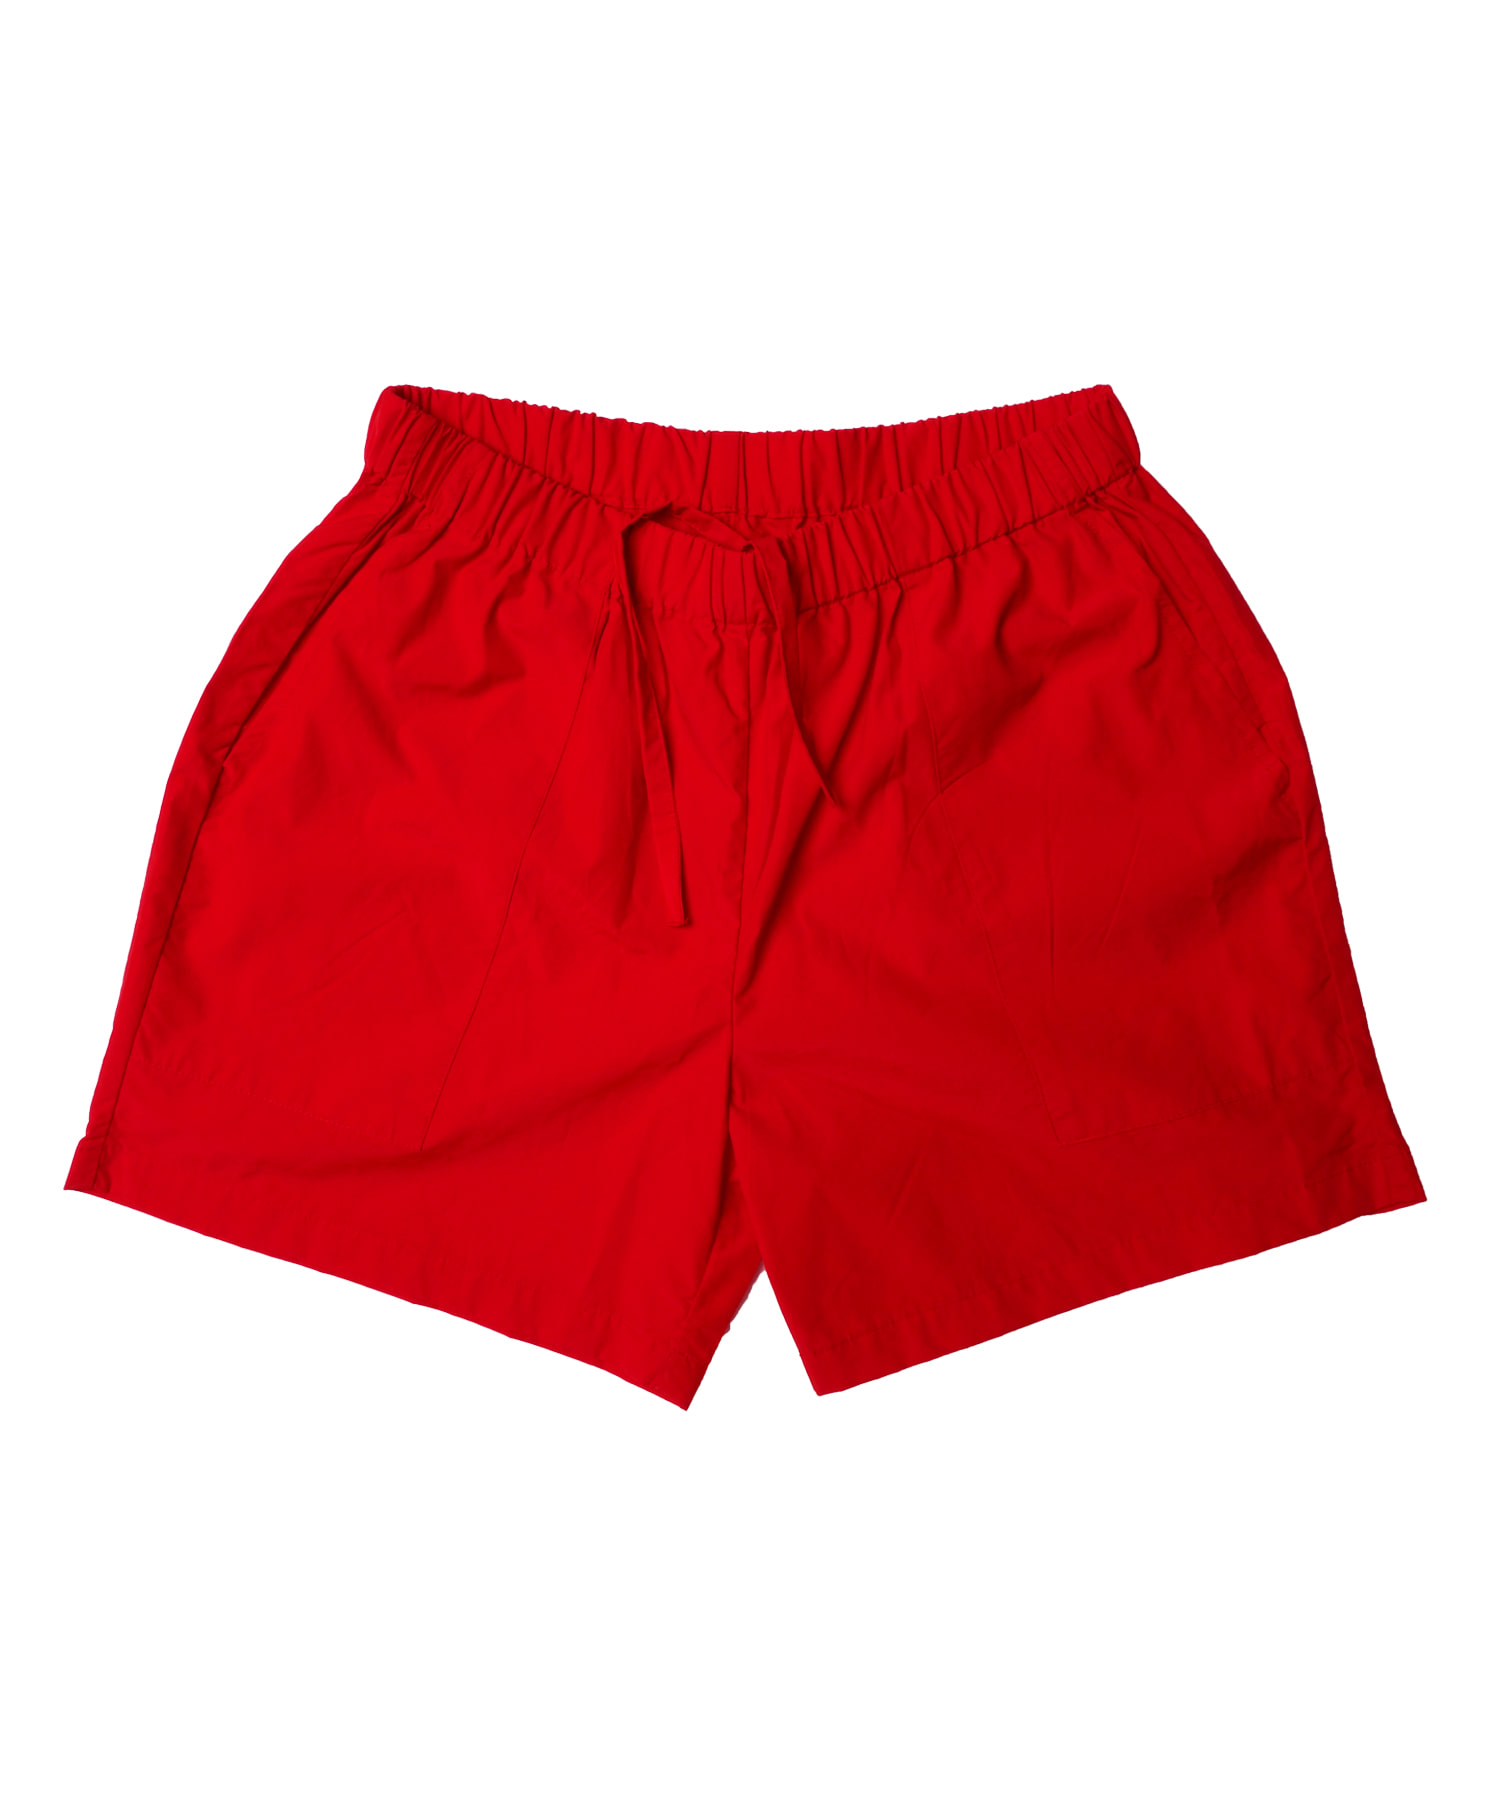 해버대셔리 BEACH SHORTS_RED